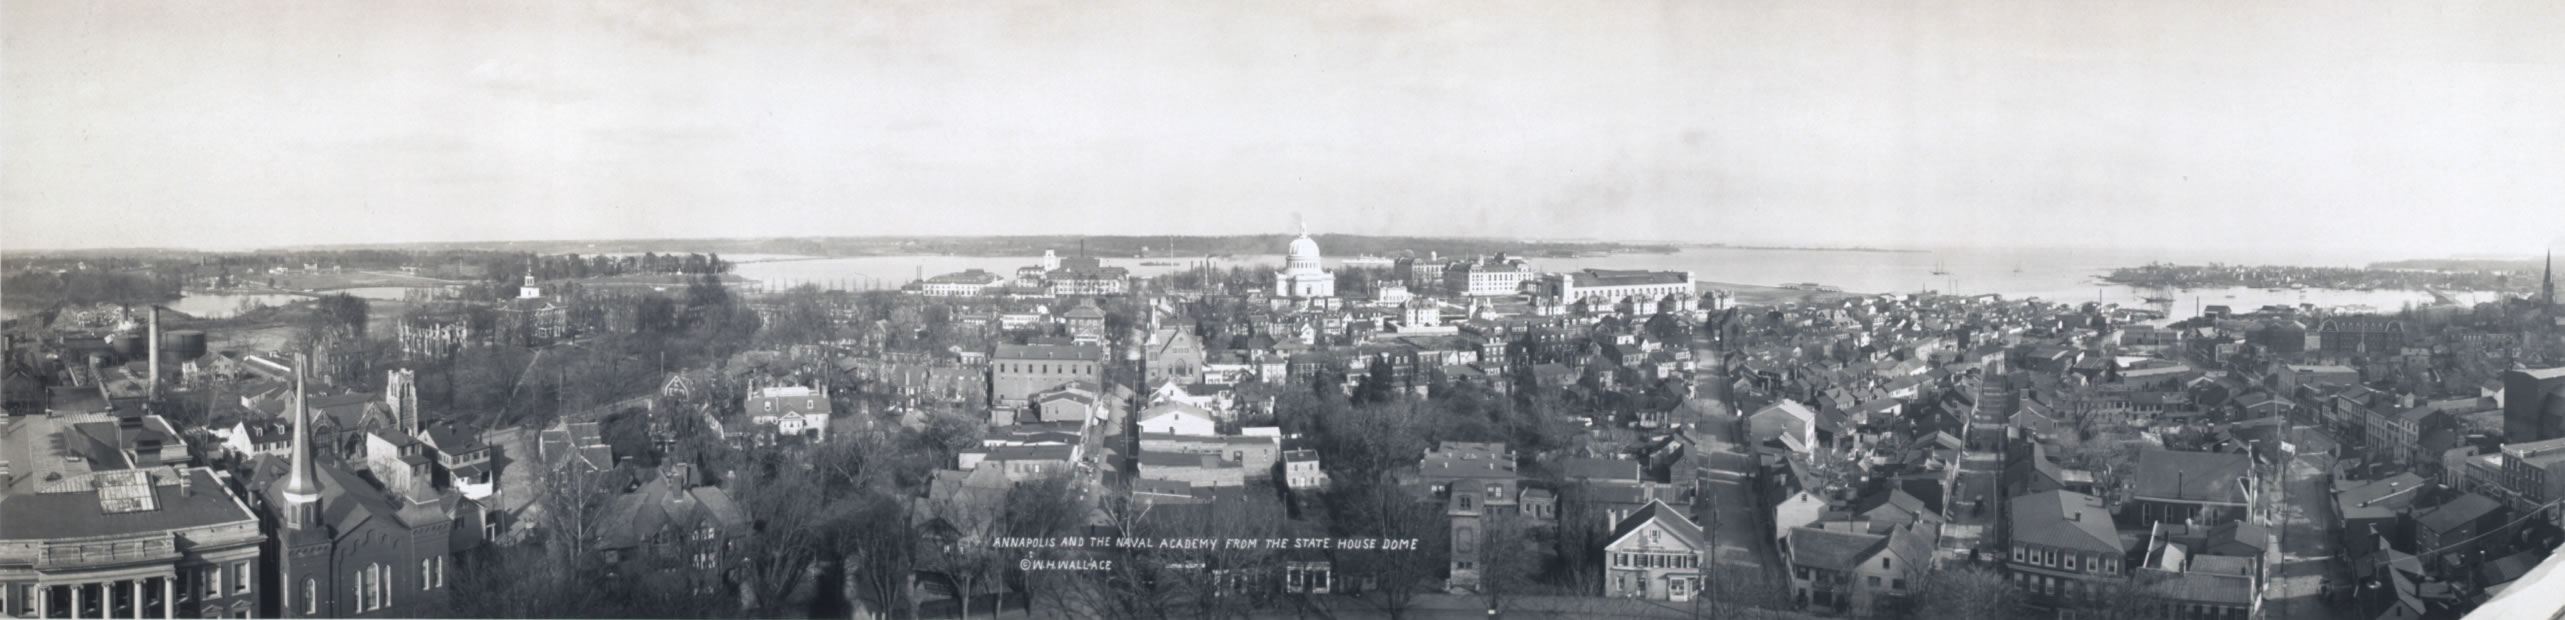 Annapolis panoramic view from State House 1911